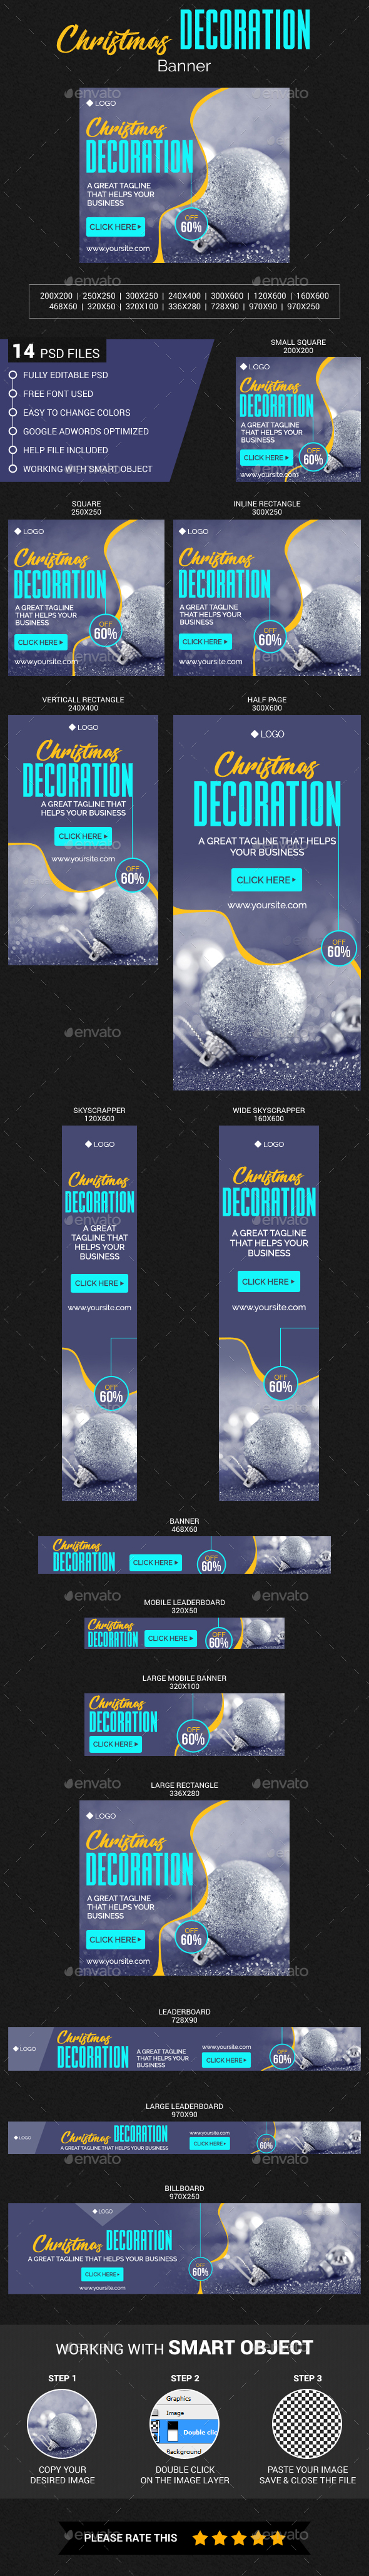 Christmas Decoration Banner - Banners & Ads Web Elements